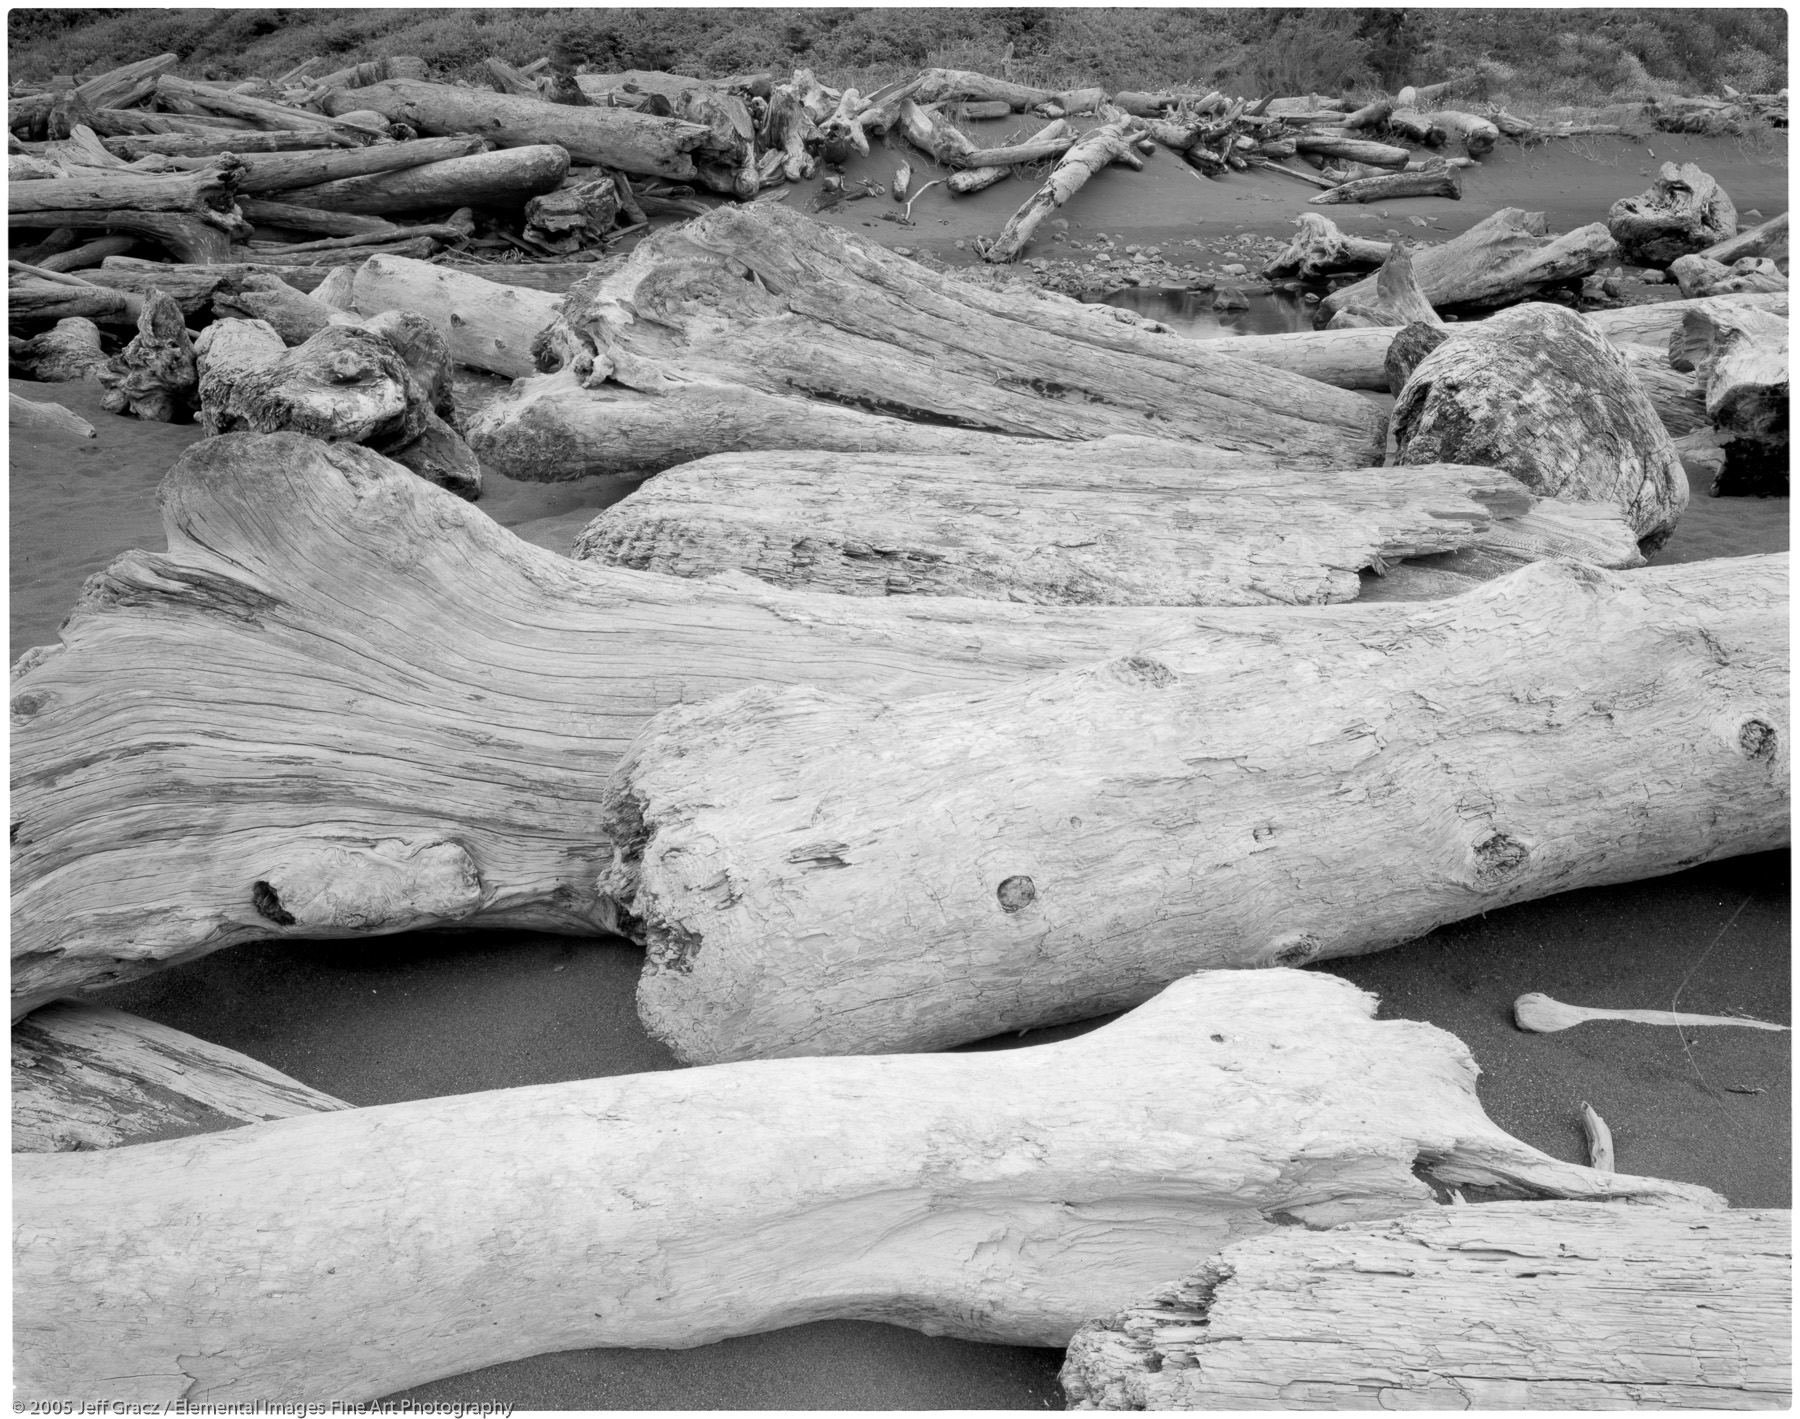 driftwood #10 - giant's bones series |  | CA | usa - © © 2005 Jeff Gracz / Elemental Images Fine Art Photography - All Rights Reserved Worldwide